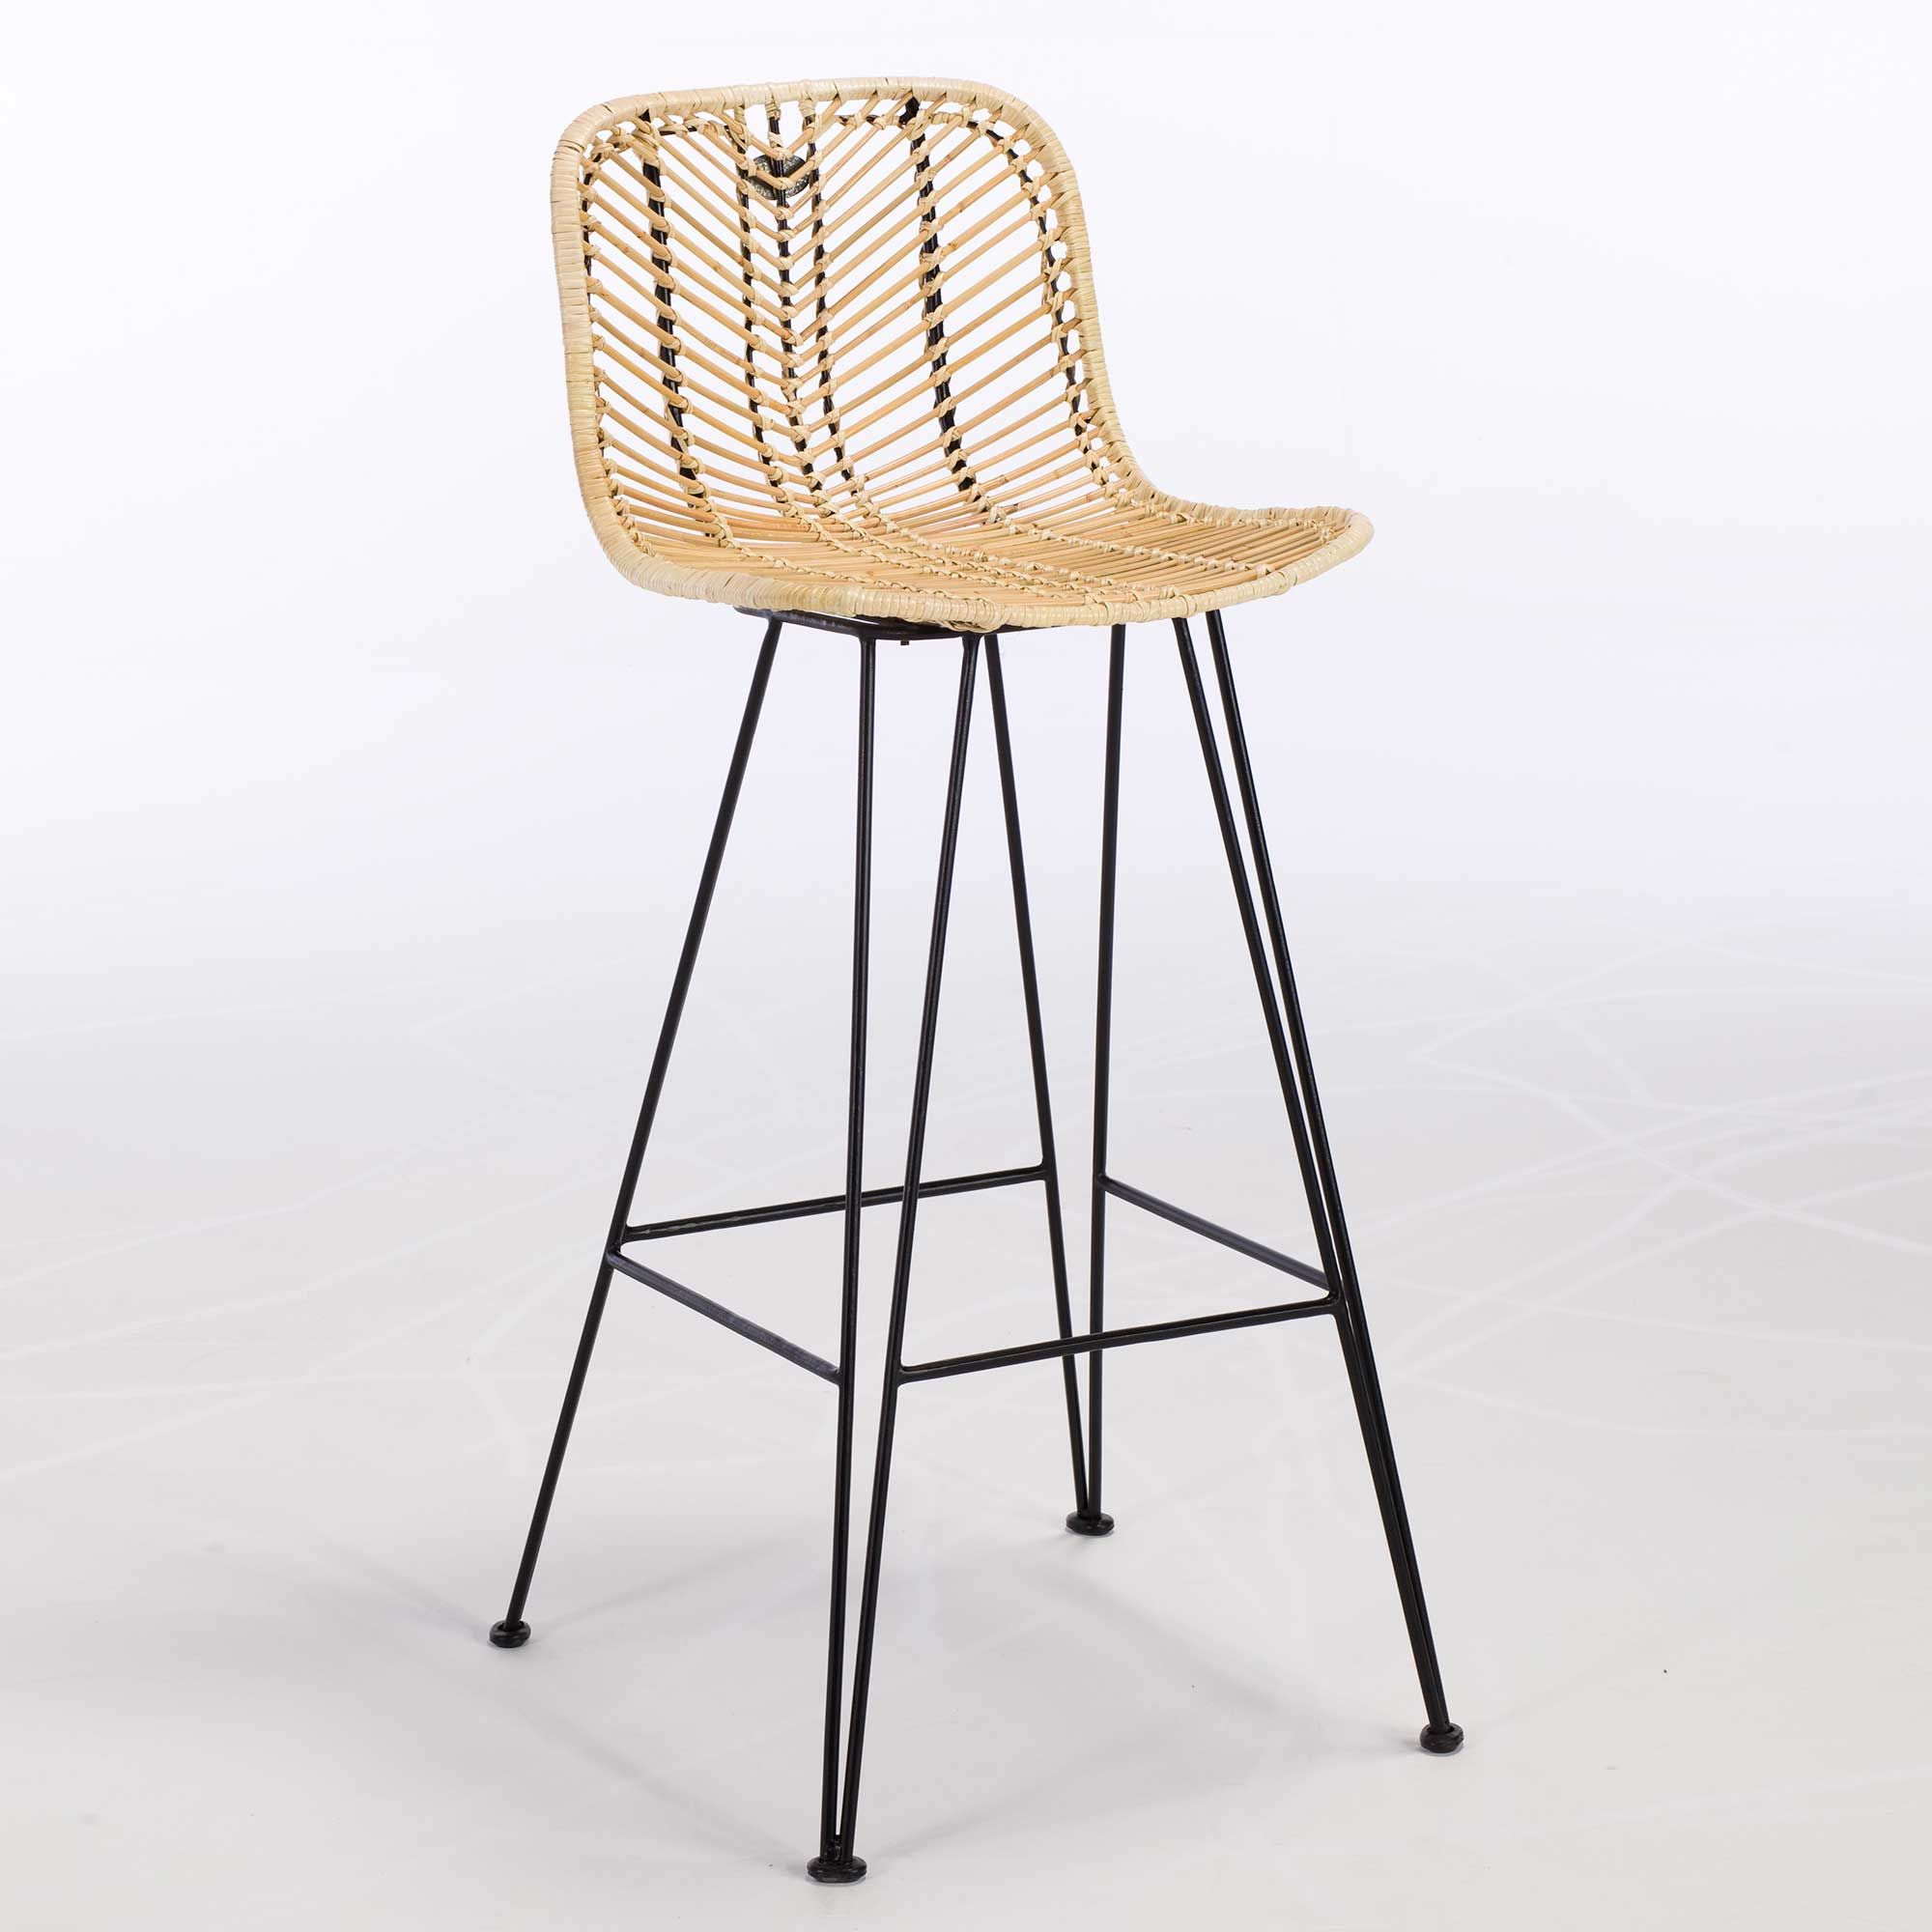 Castello Rattan Bar Stool, Natural and Black available online at ...